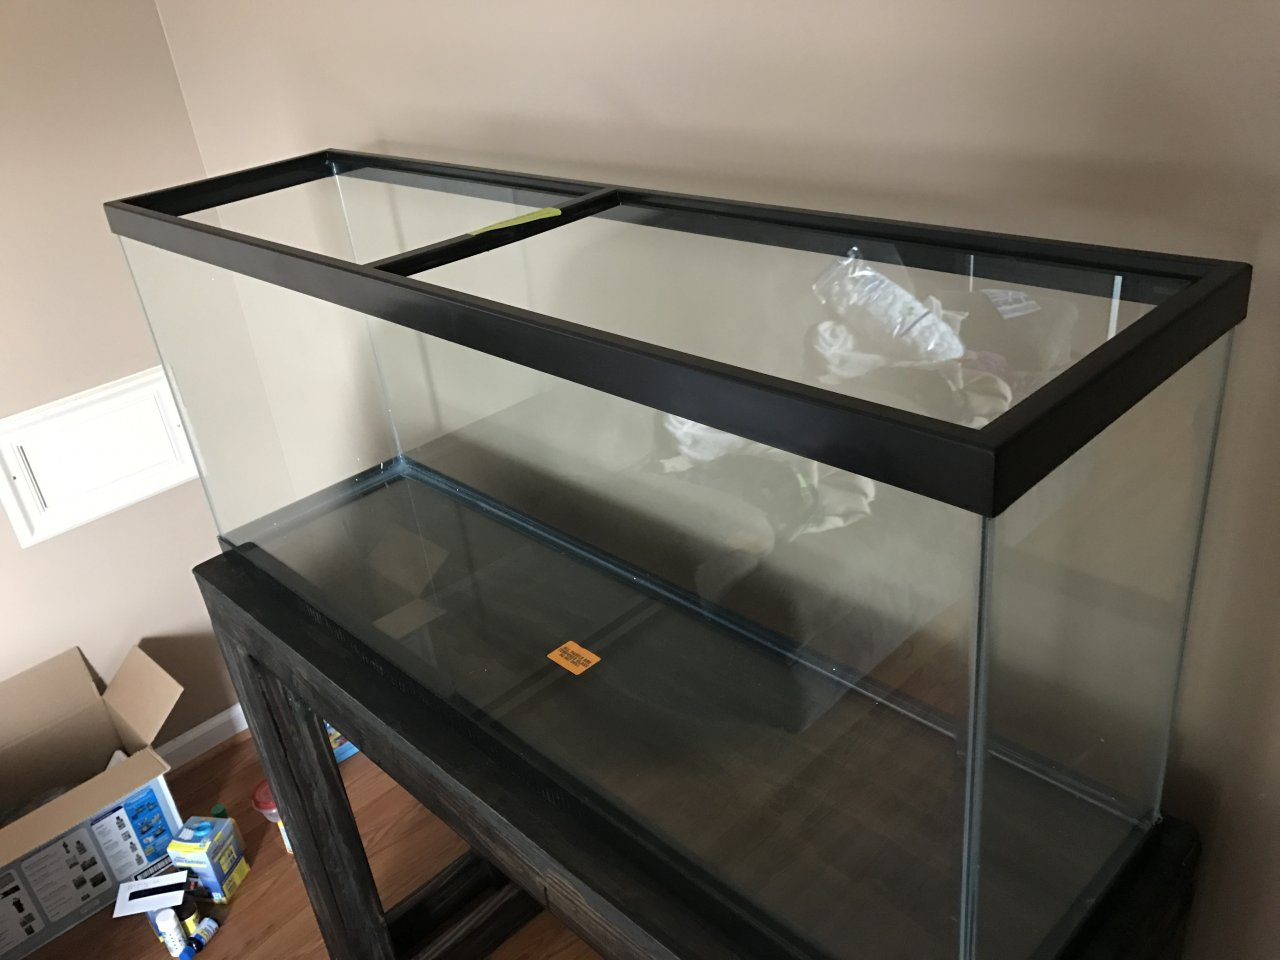 best aquarium hood ideas i have a 55 gallon tank with two